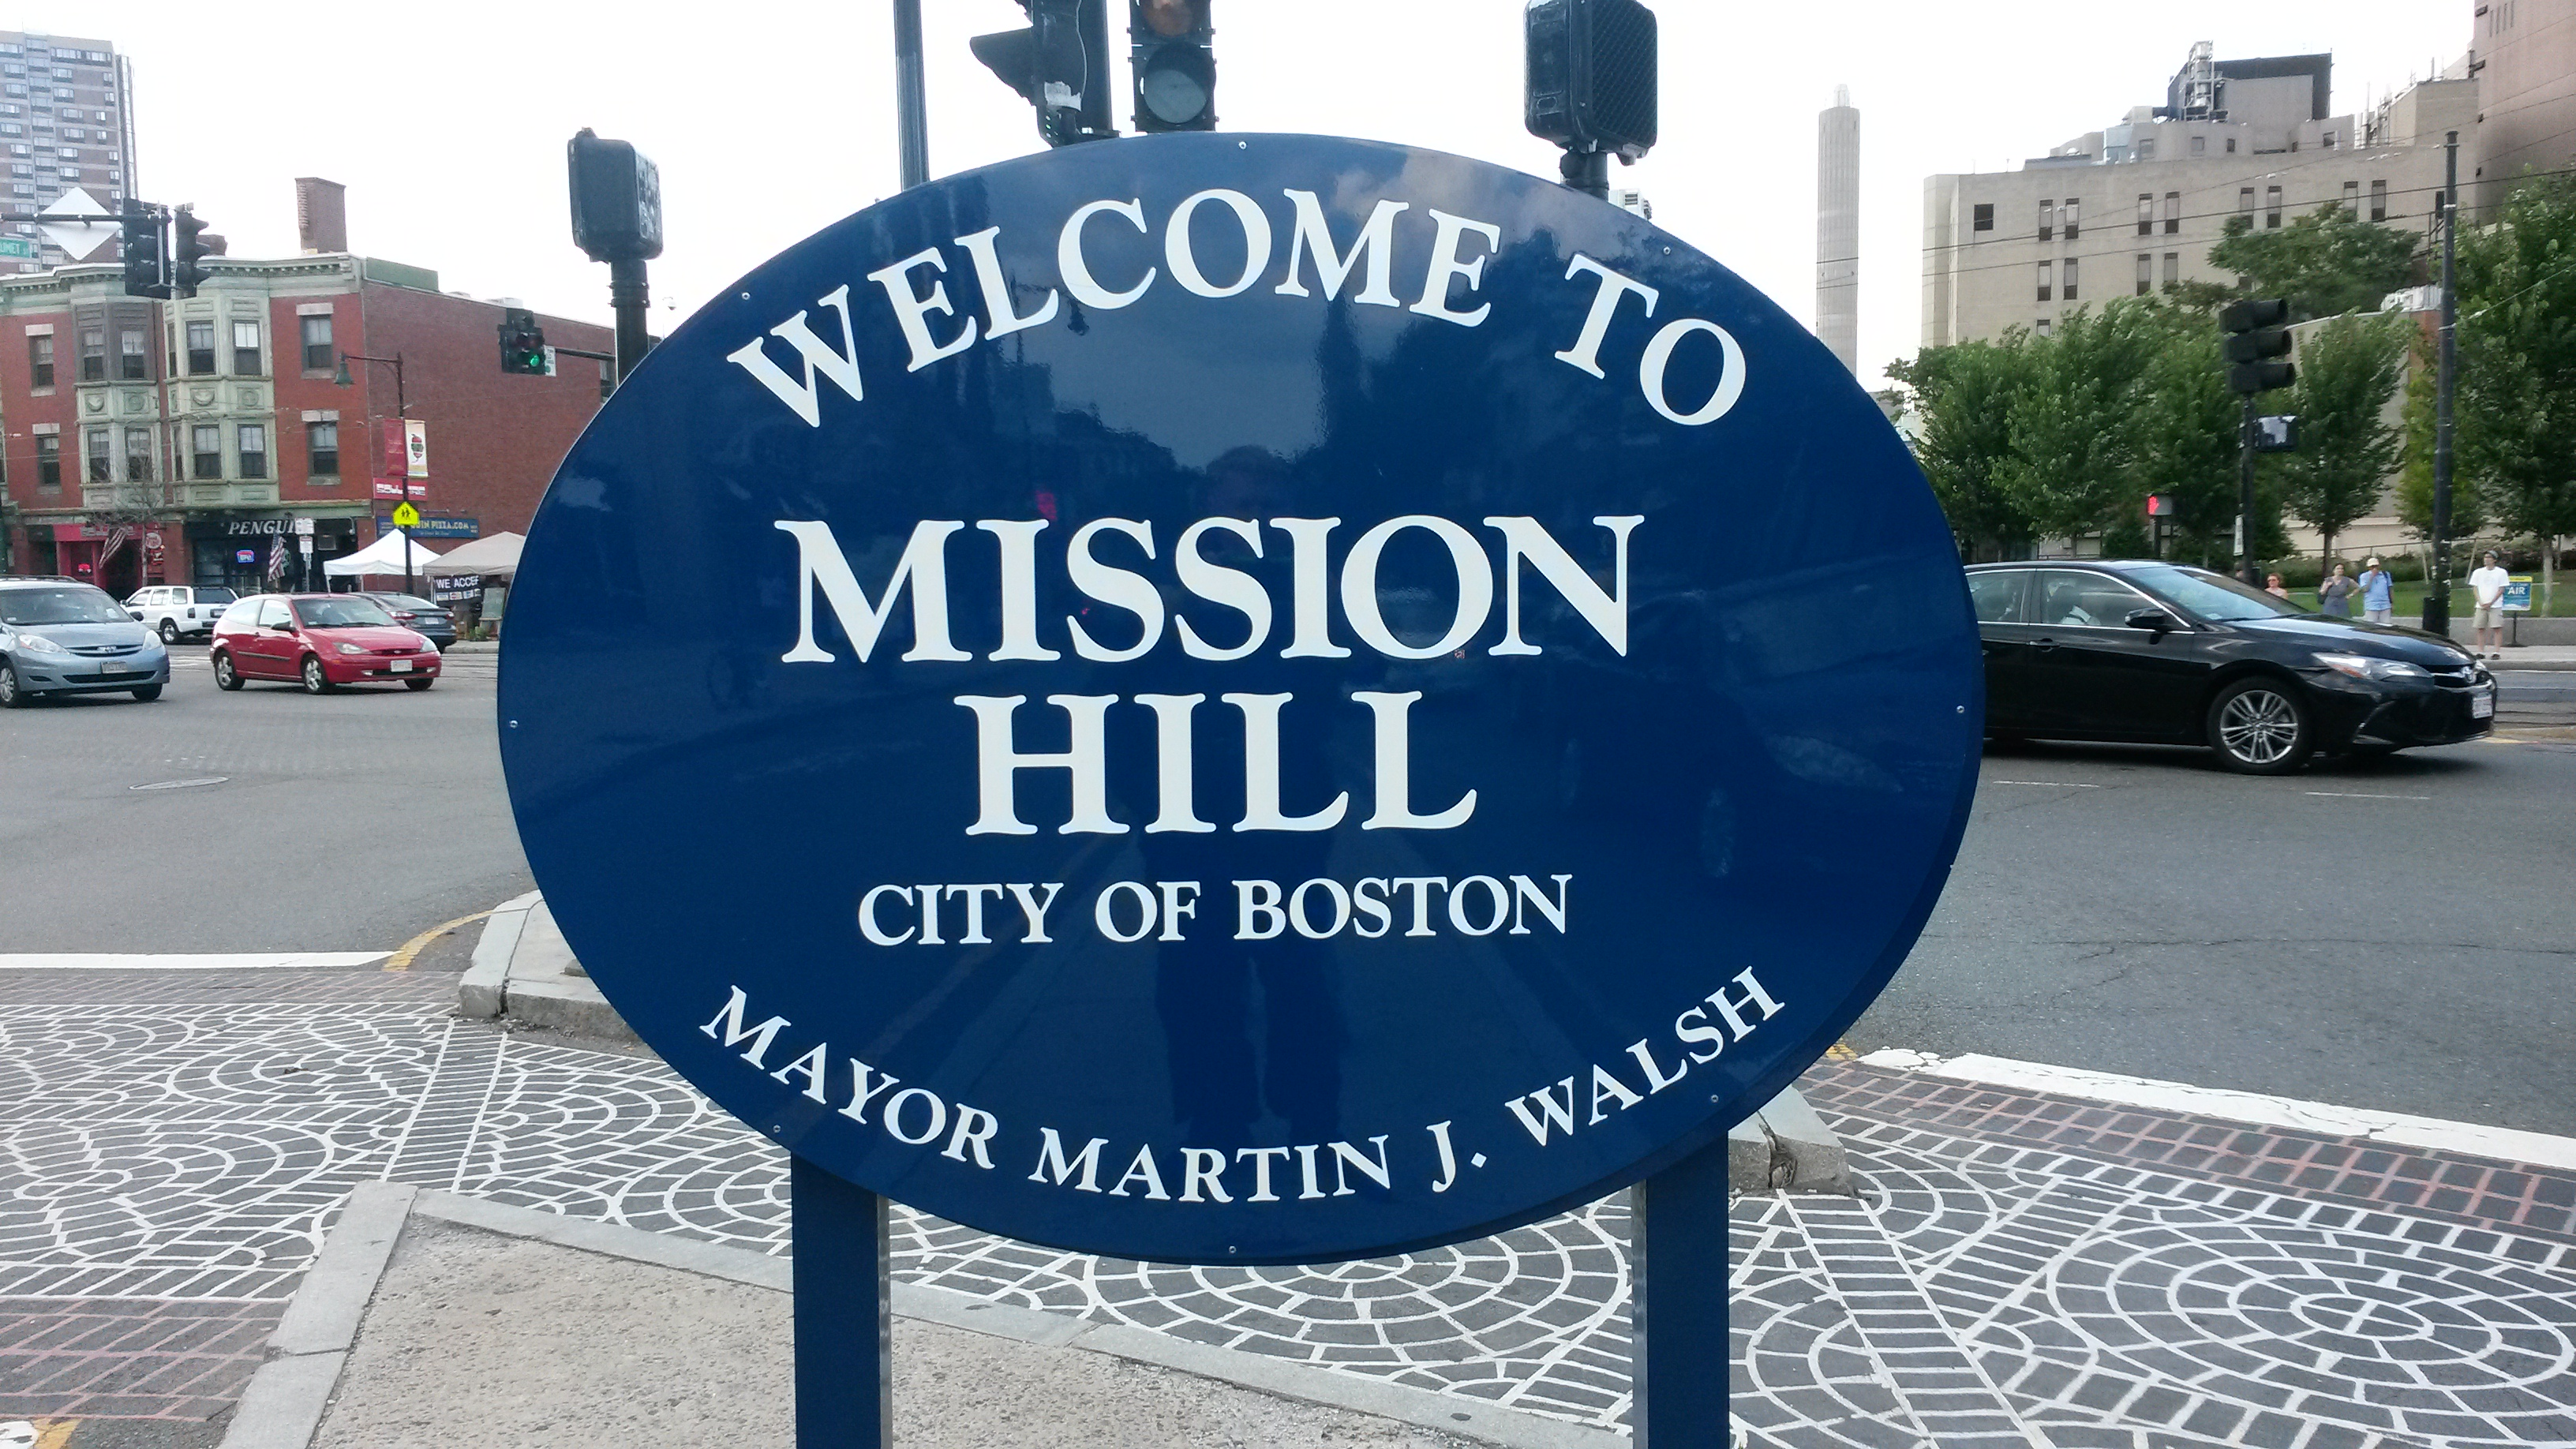 Mission Hill, Boston - Wikipedia